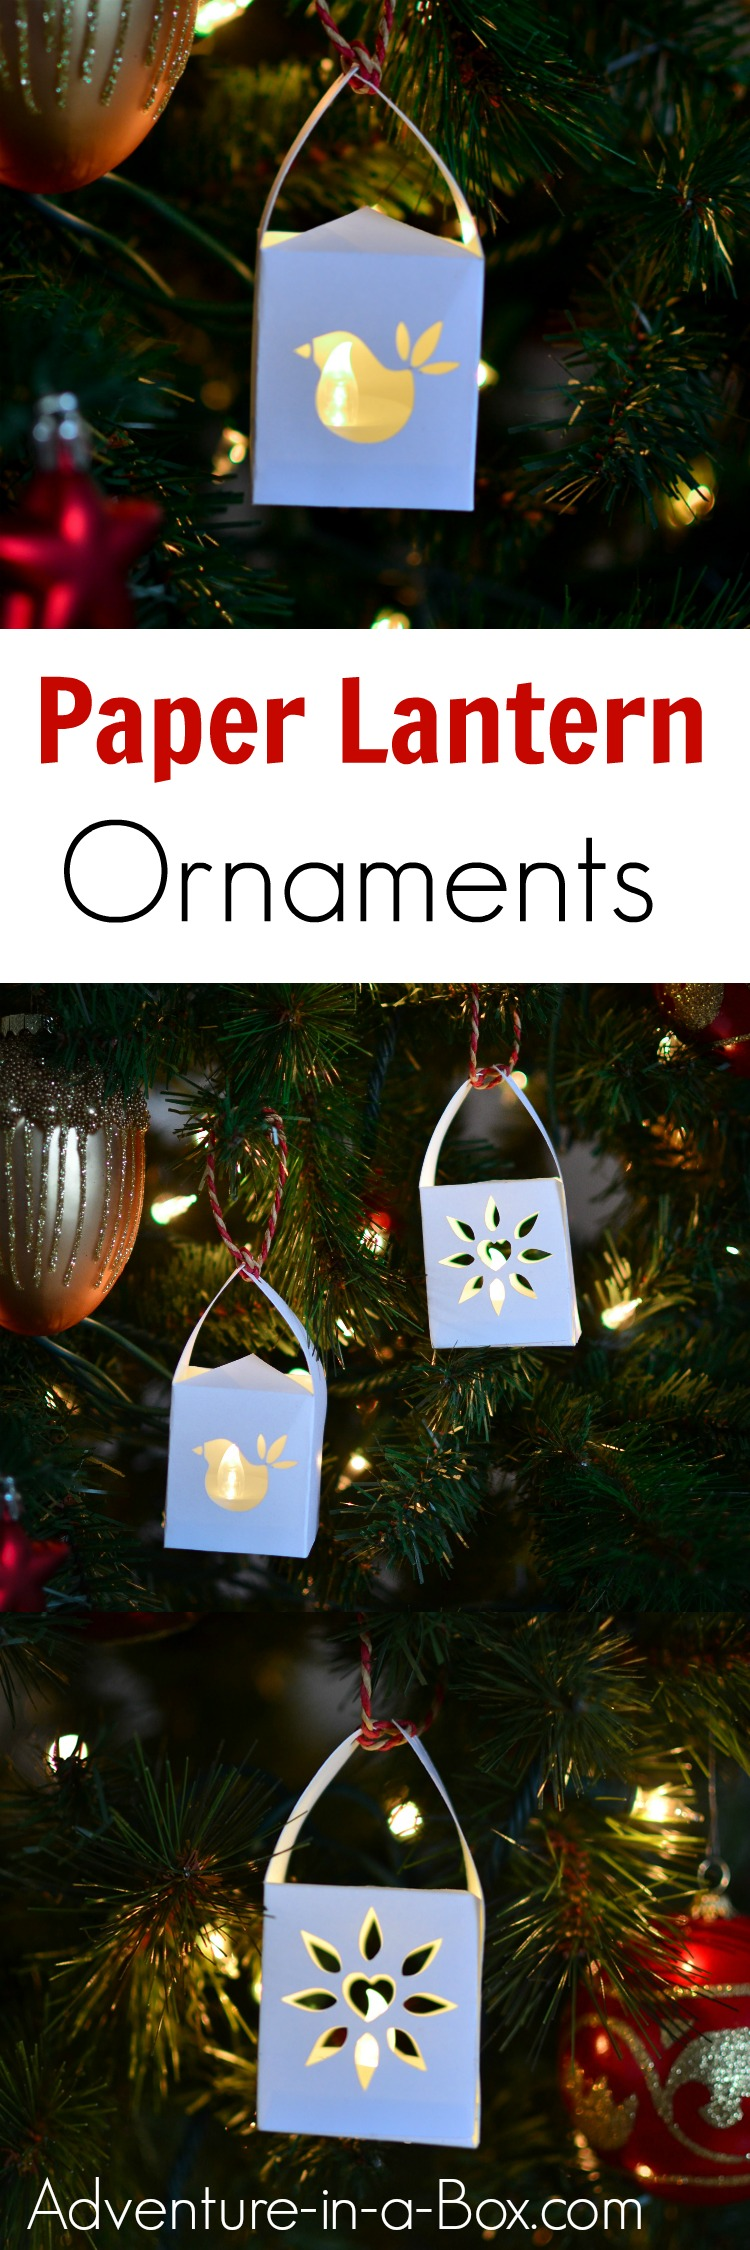 Add even more glow to your Christmas tree with these handmade paper lantern ornaments that have an LED light inside! Printable templates available to make it a very easy craft.